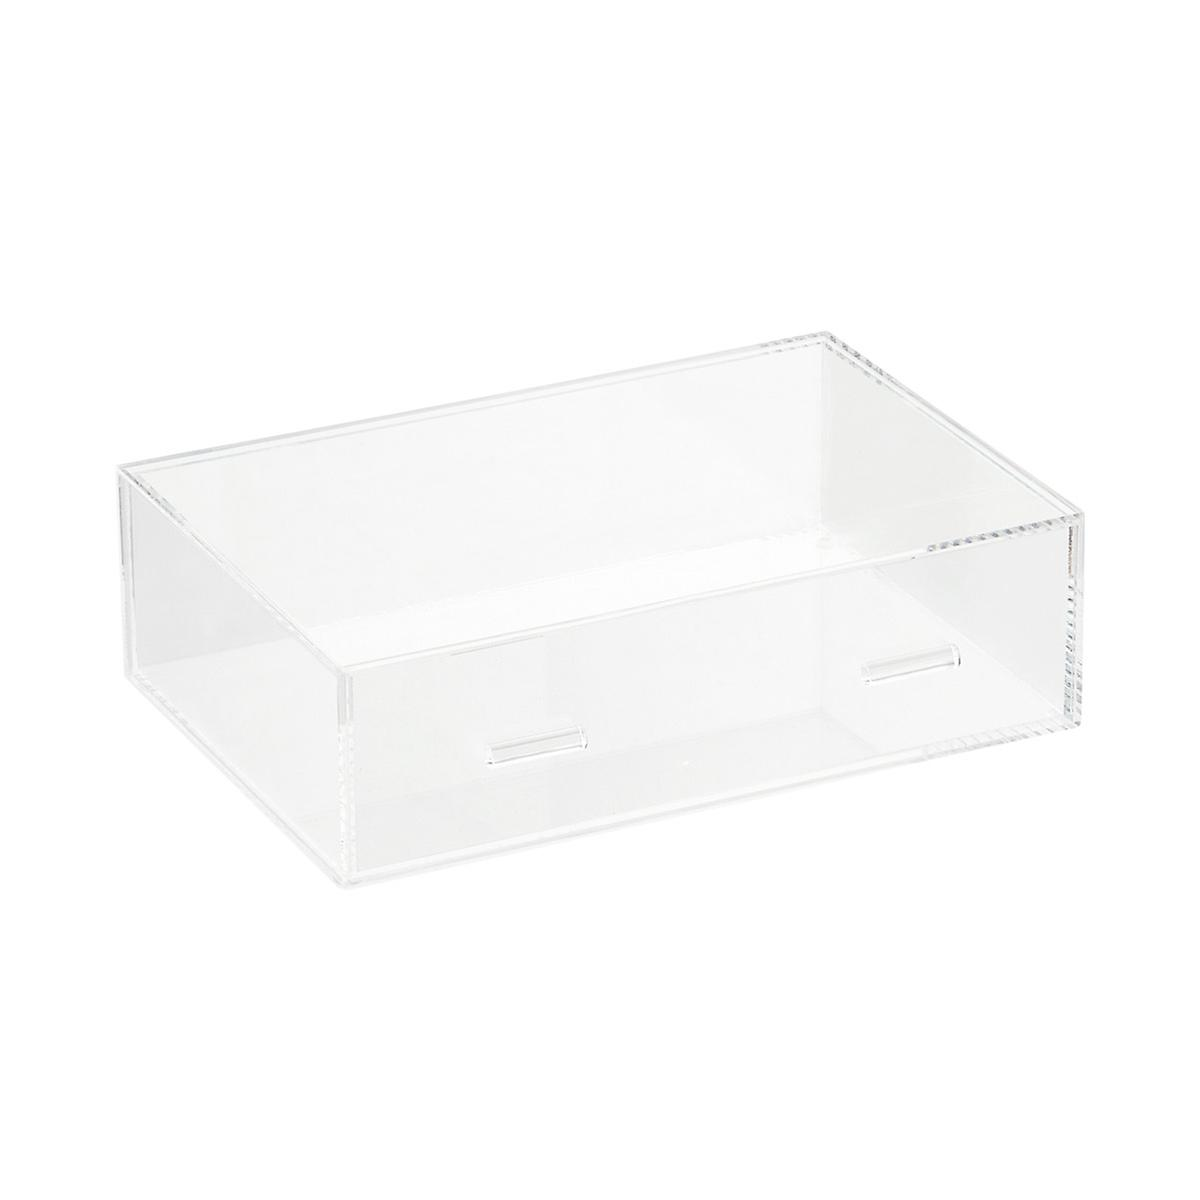 ... Large Luxe Acrylic Makeup Organizer Clear. Roll over to zoom